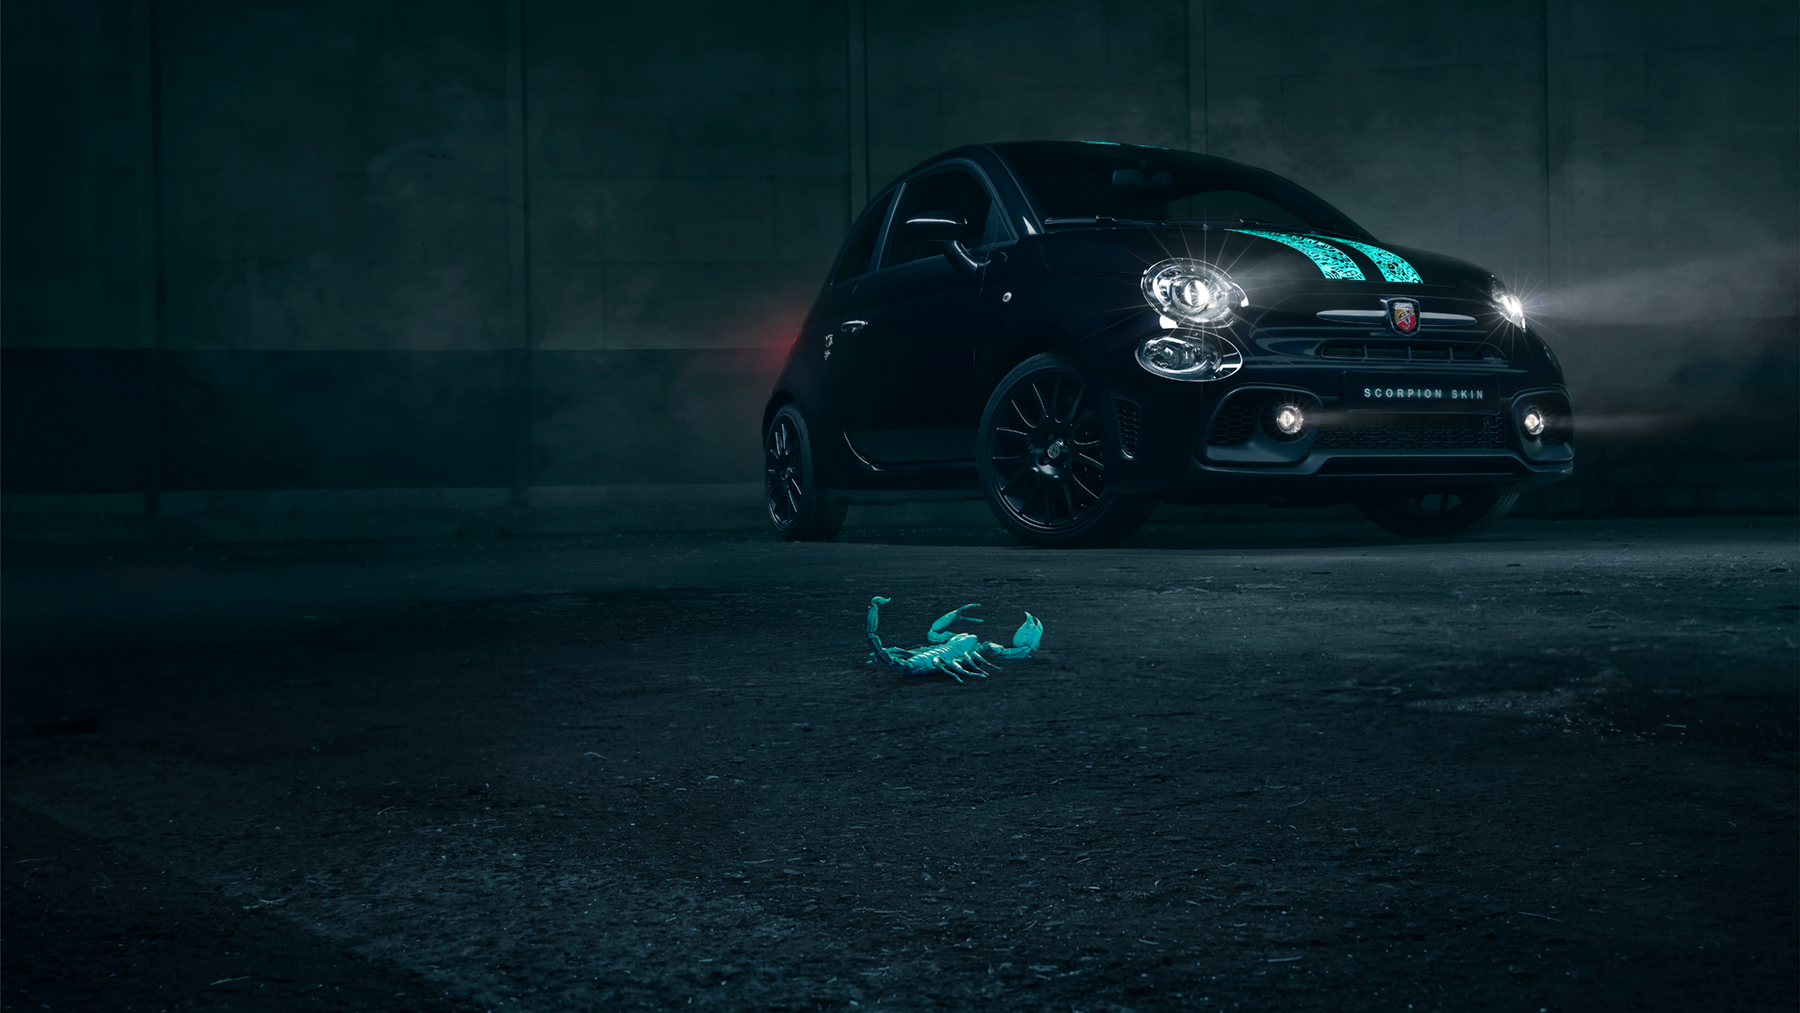 Abarth Scorpion Skin Edition 1 - auto schorpioen.jpg